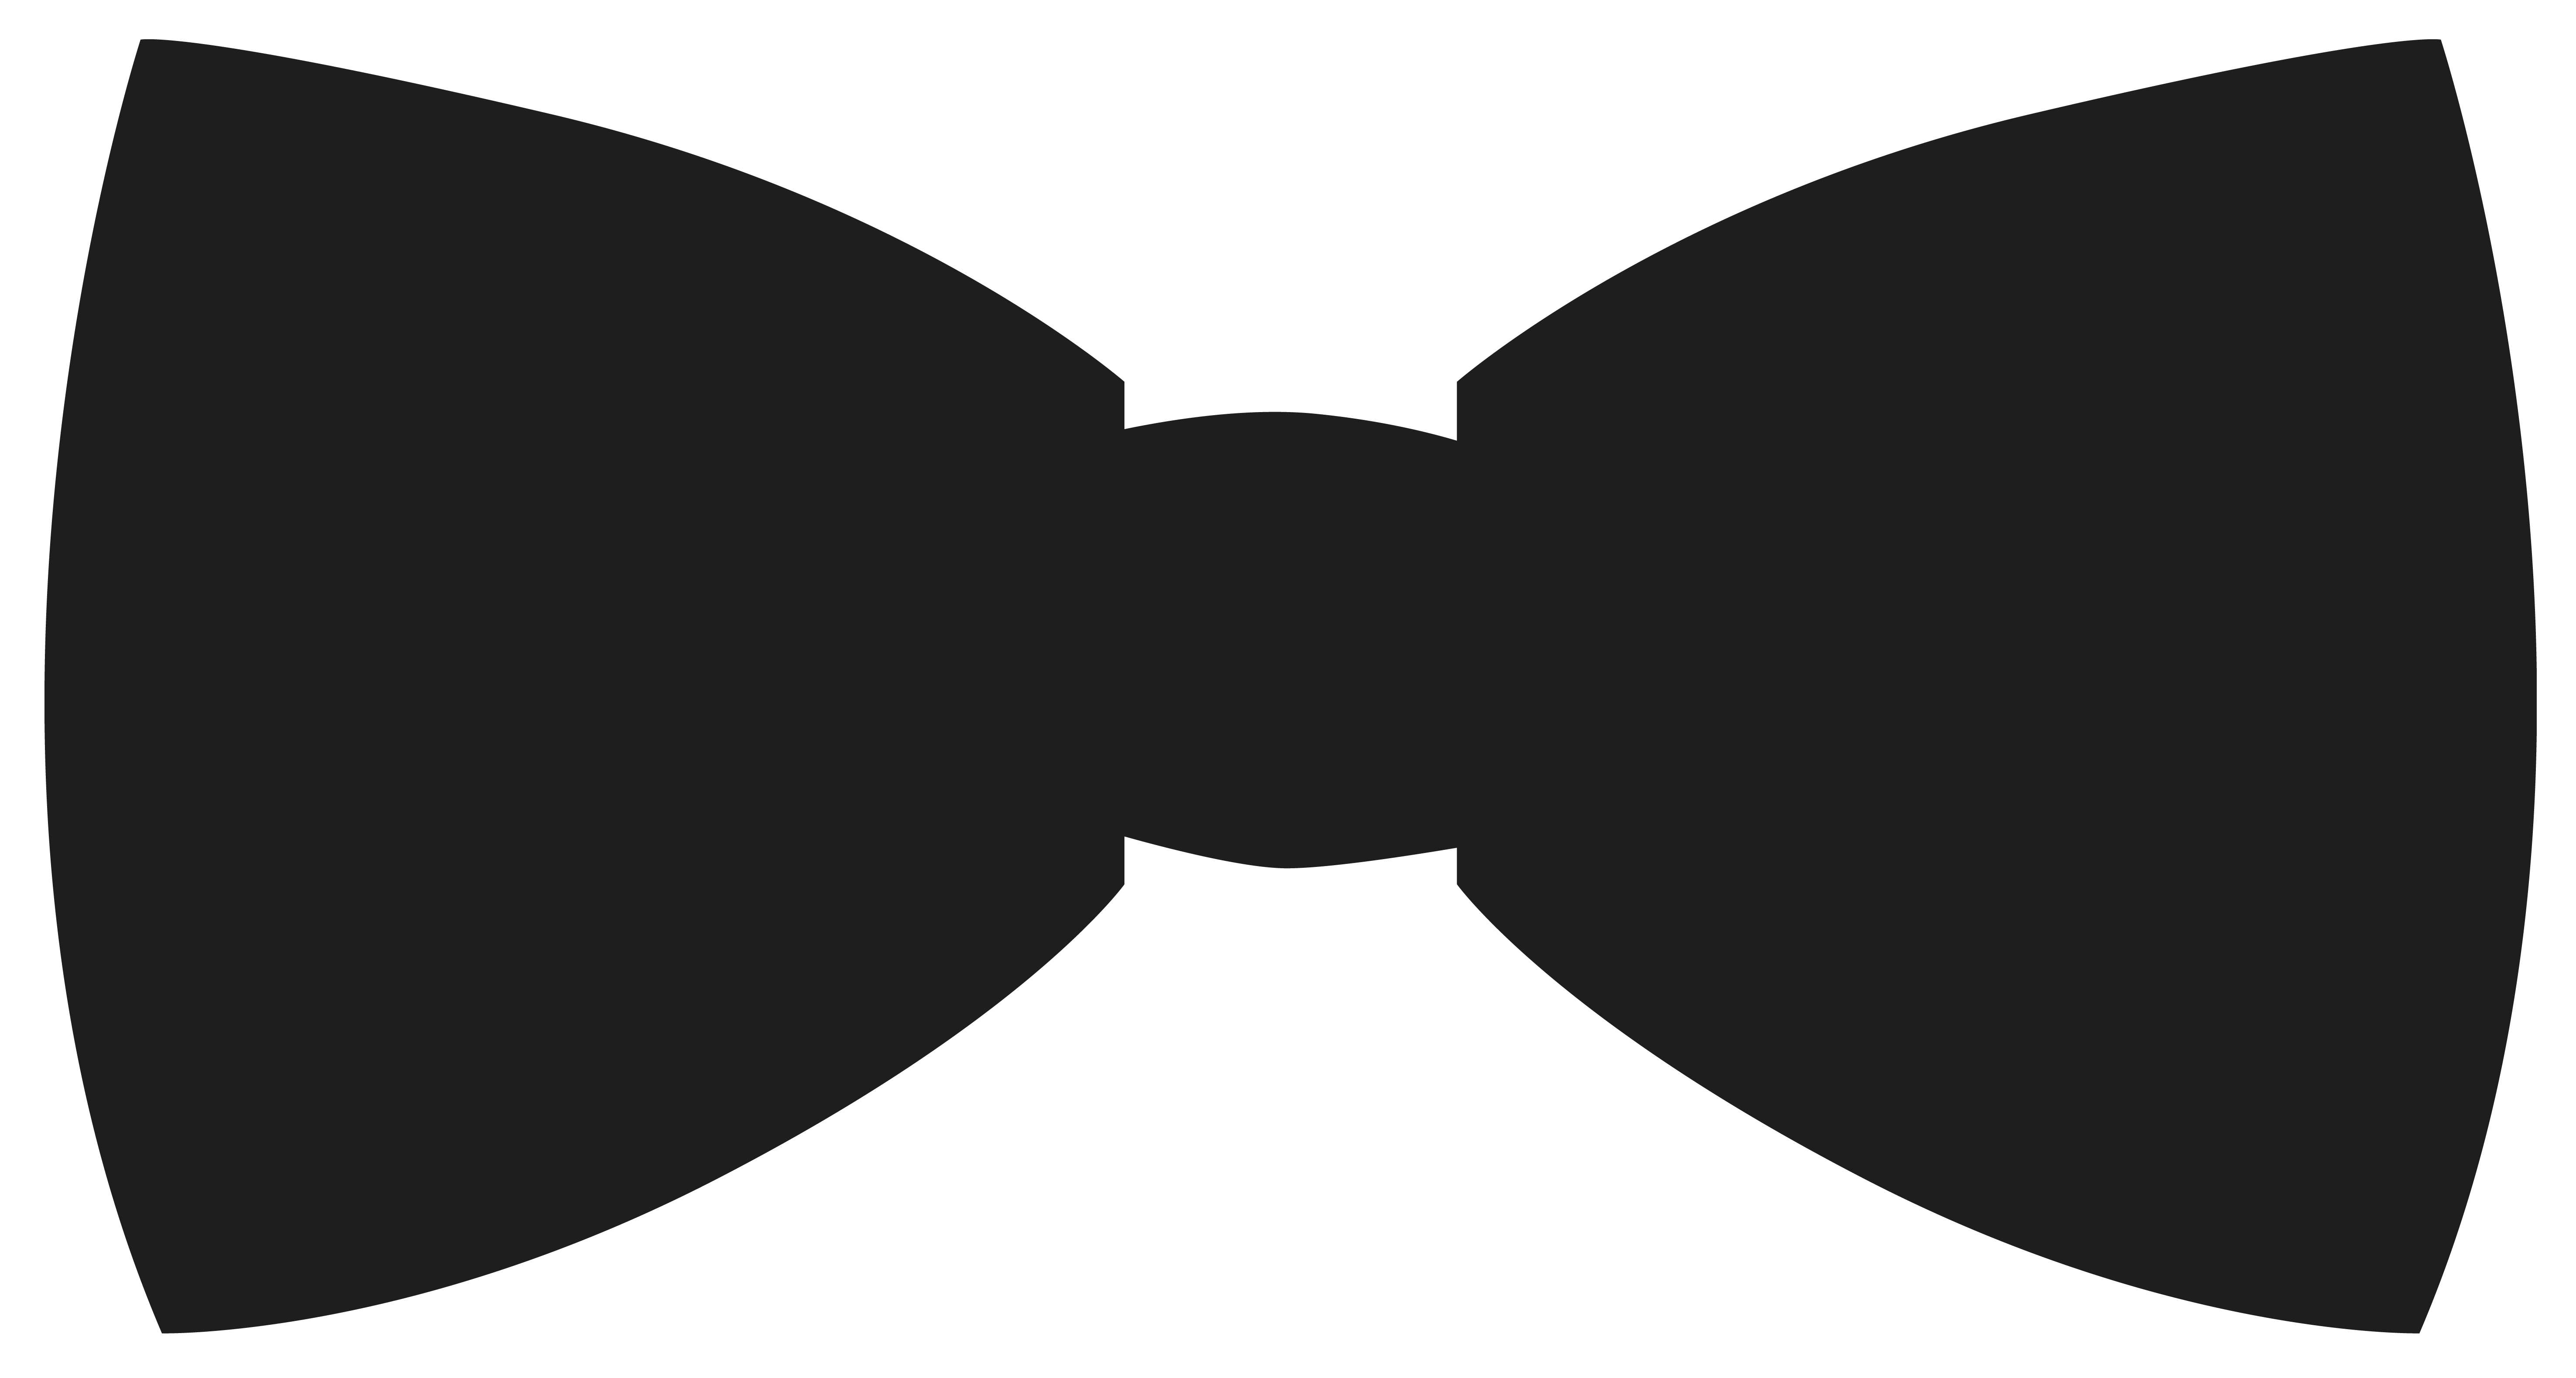 Movember Bowtie Png Clipart Image Gallery Yopriceville High Quality Images And Transparent Png Free Clipart In 2020 Clip Art Free Clip Art Clipart Images